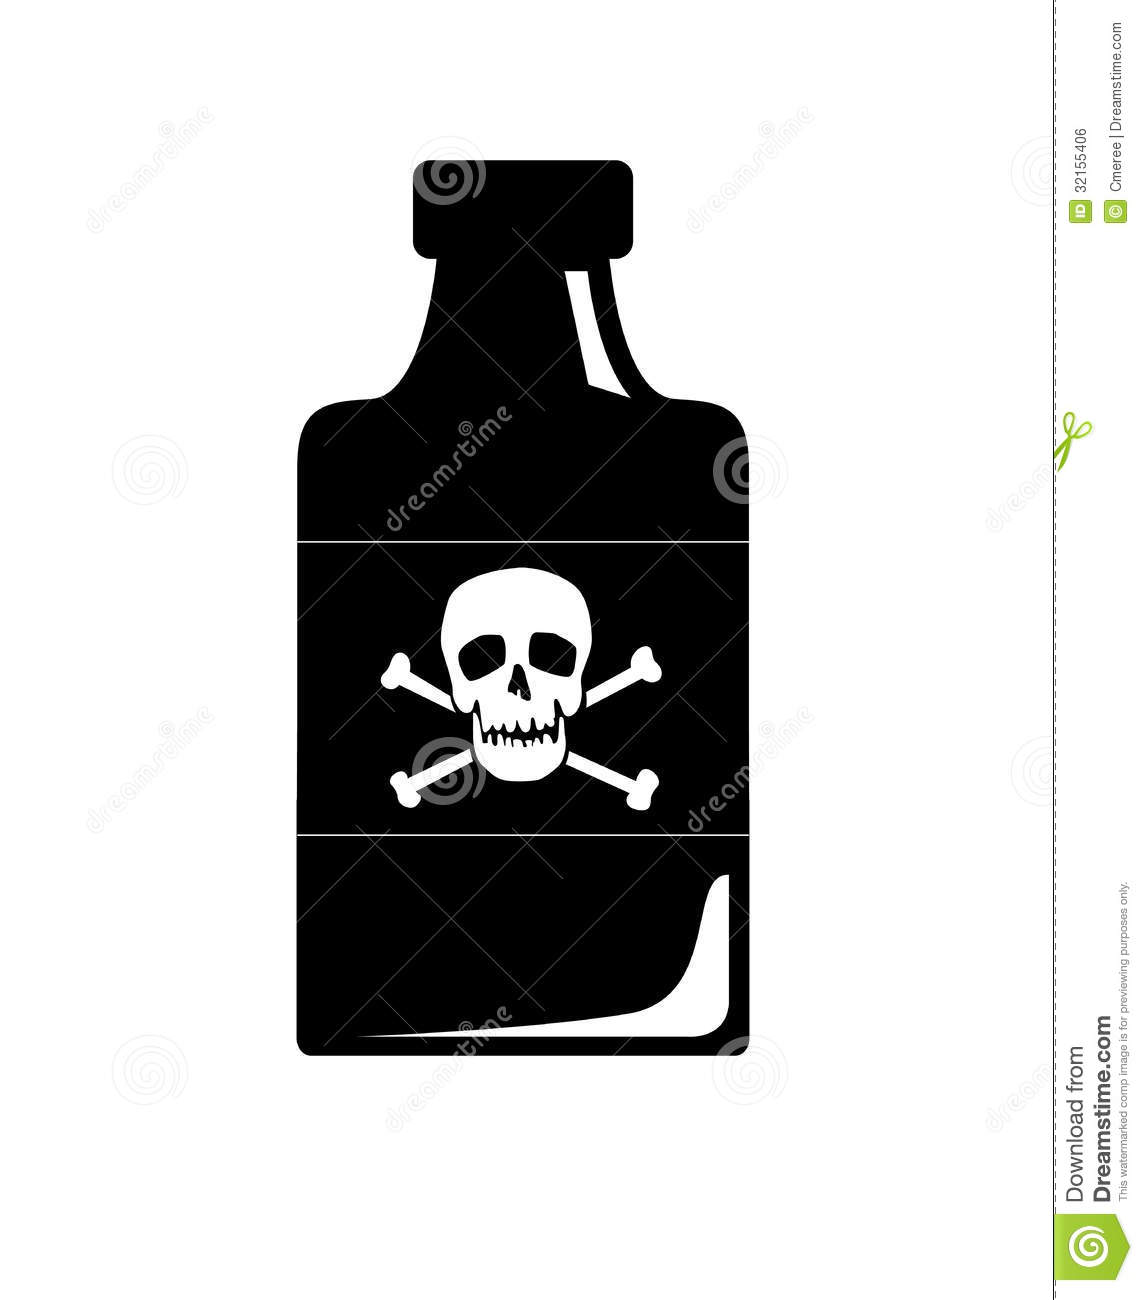 Poison Royalty Free Stock Image - Image: 32155406